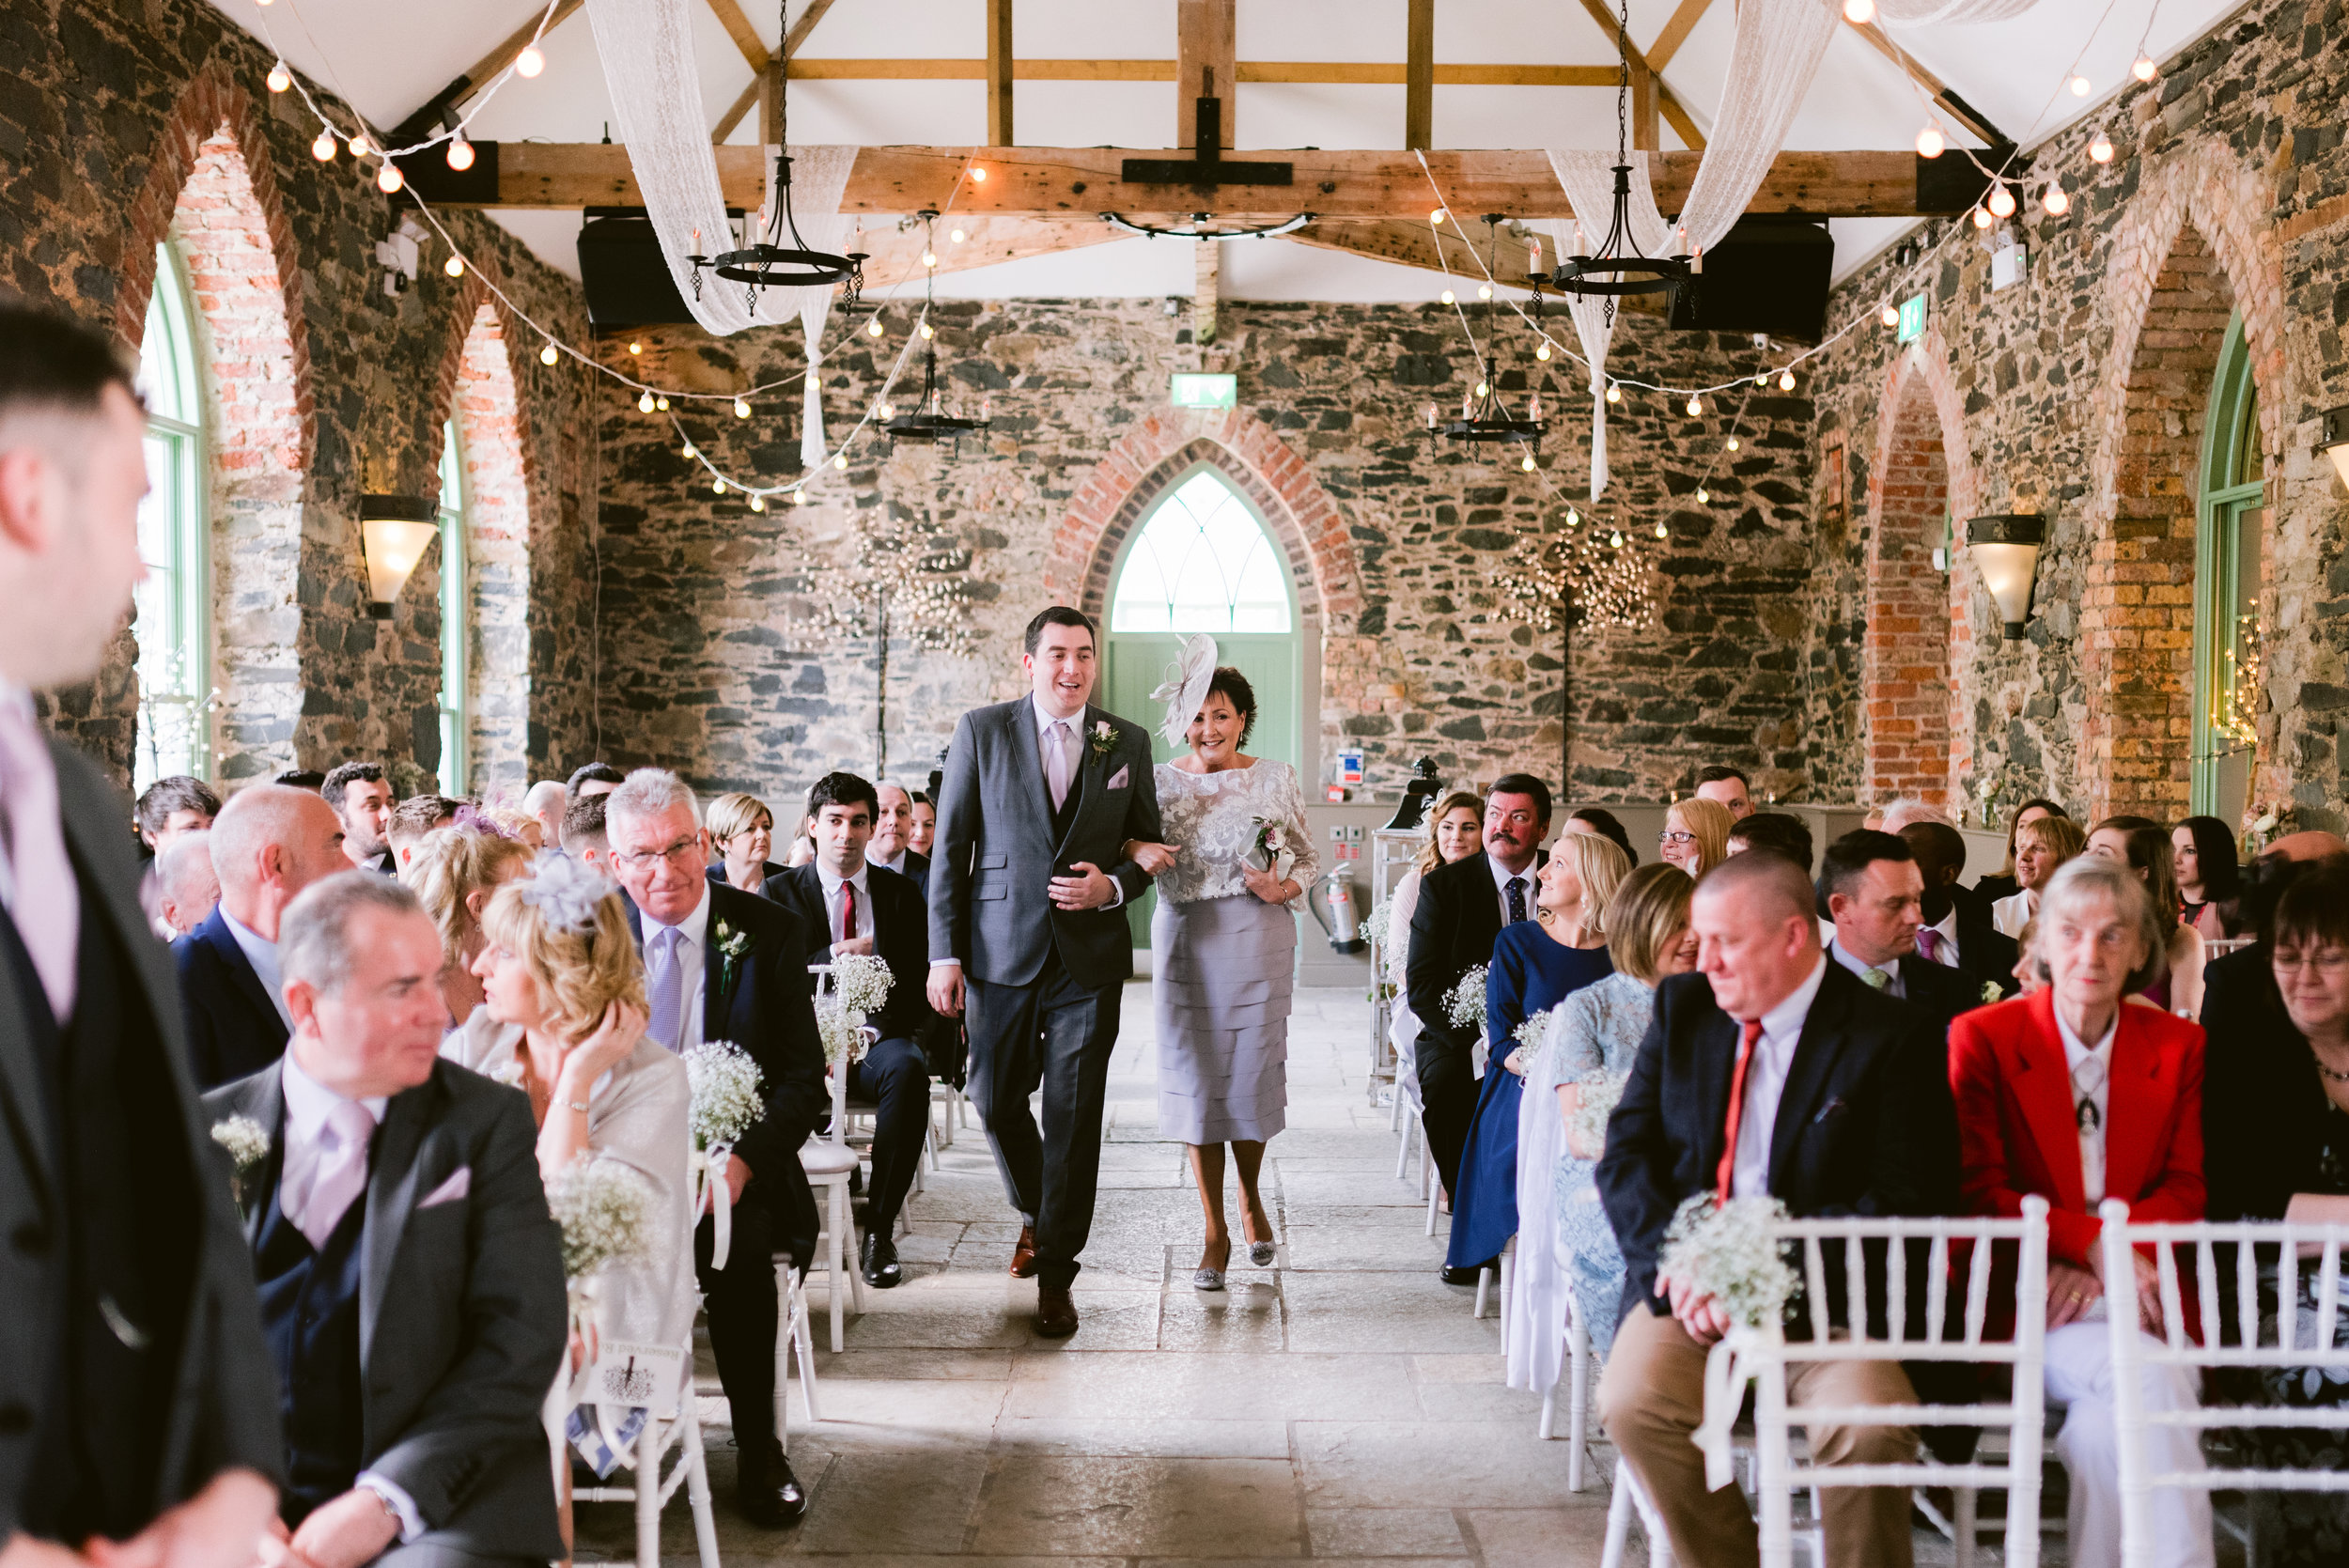 orange tree wedding, orange tree ceremony, barn wedding venue northern ireland, rustic wedding venues NI, bright wedding venues northern ireland, greyabbey wedding venue (7).jpg